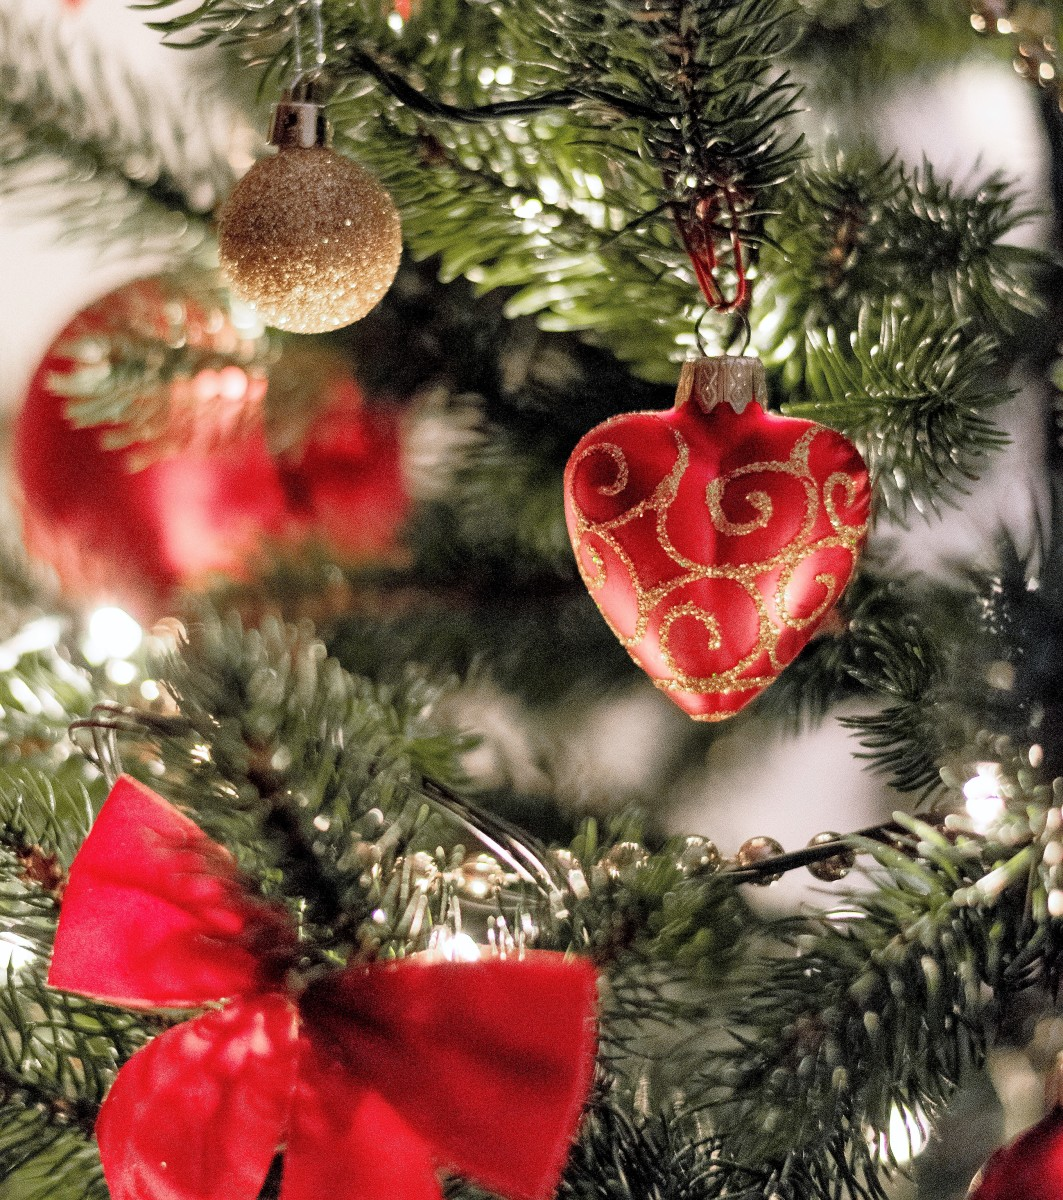 Christmas tree decorations can be beautiful, but dog safety needs to be kept in mind when choosing them.